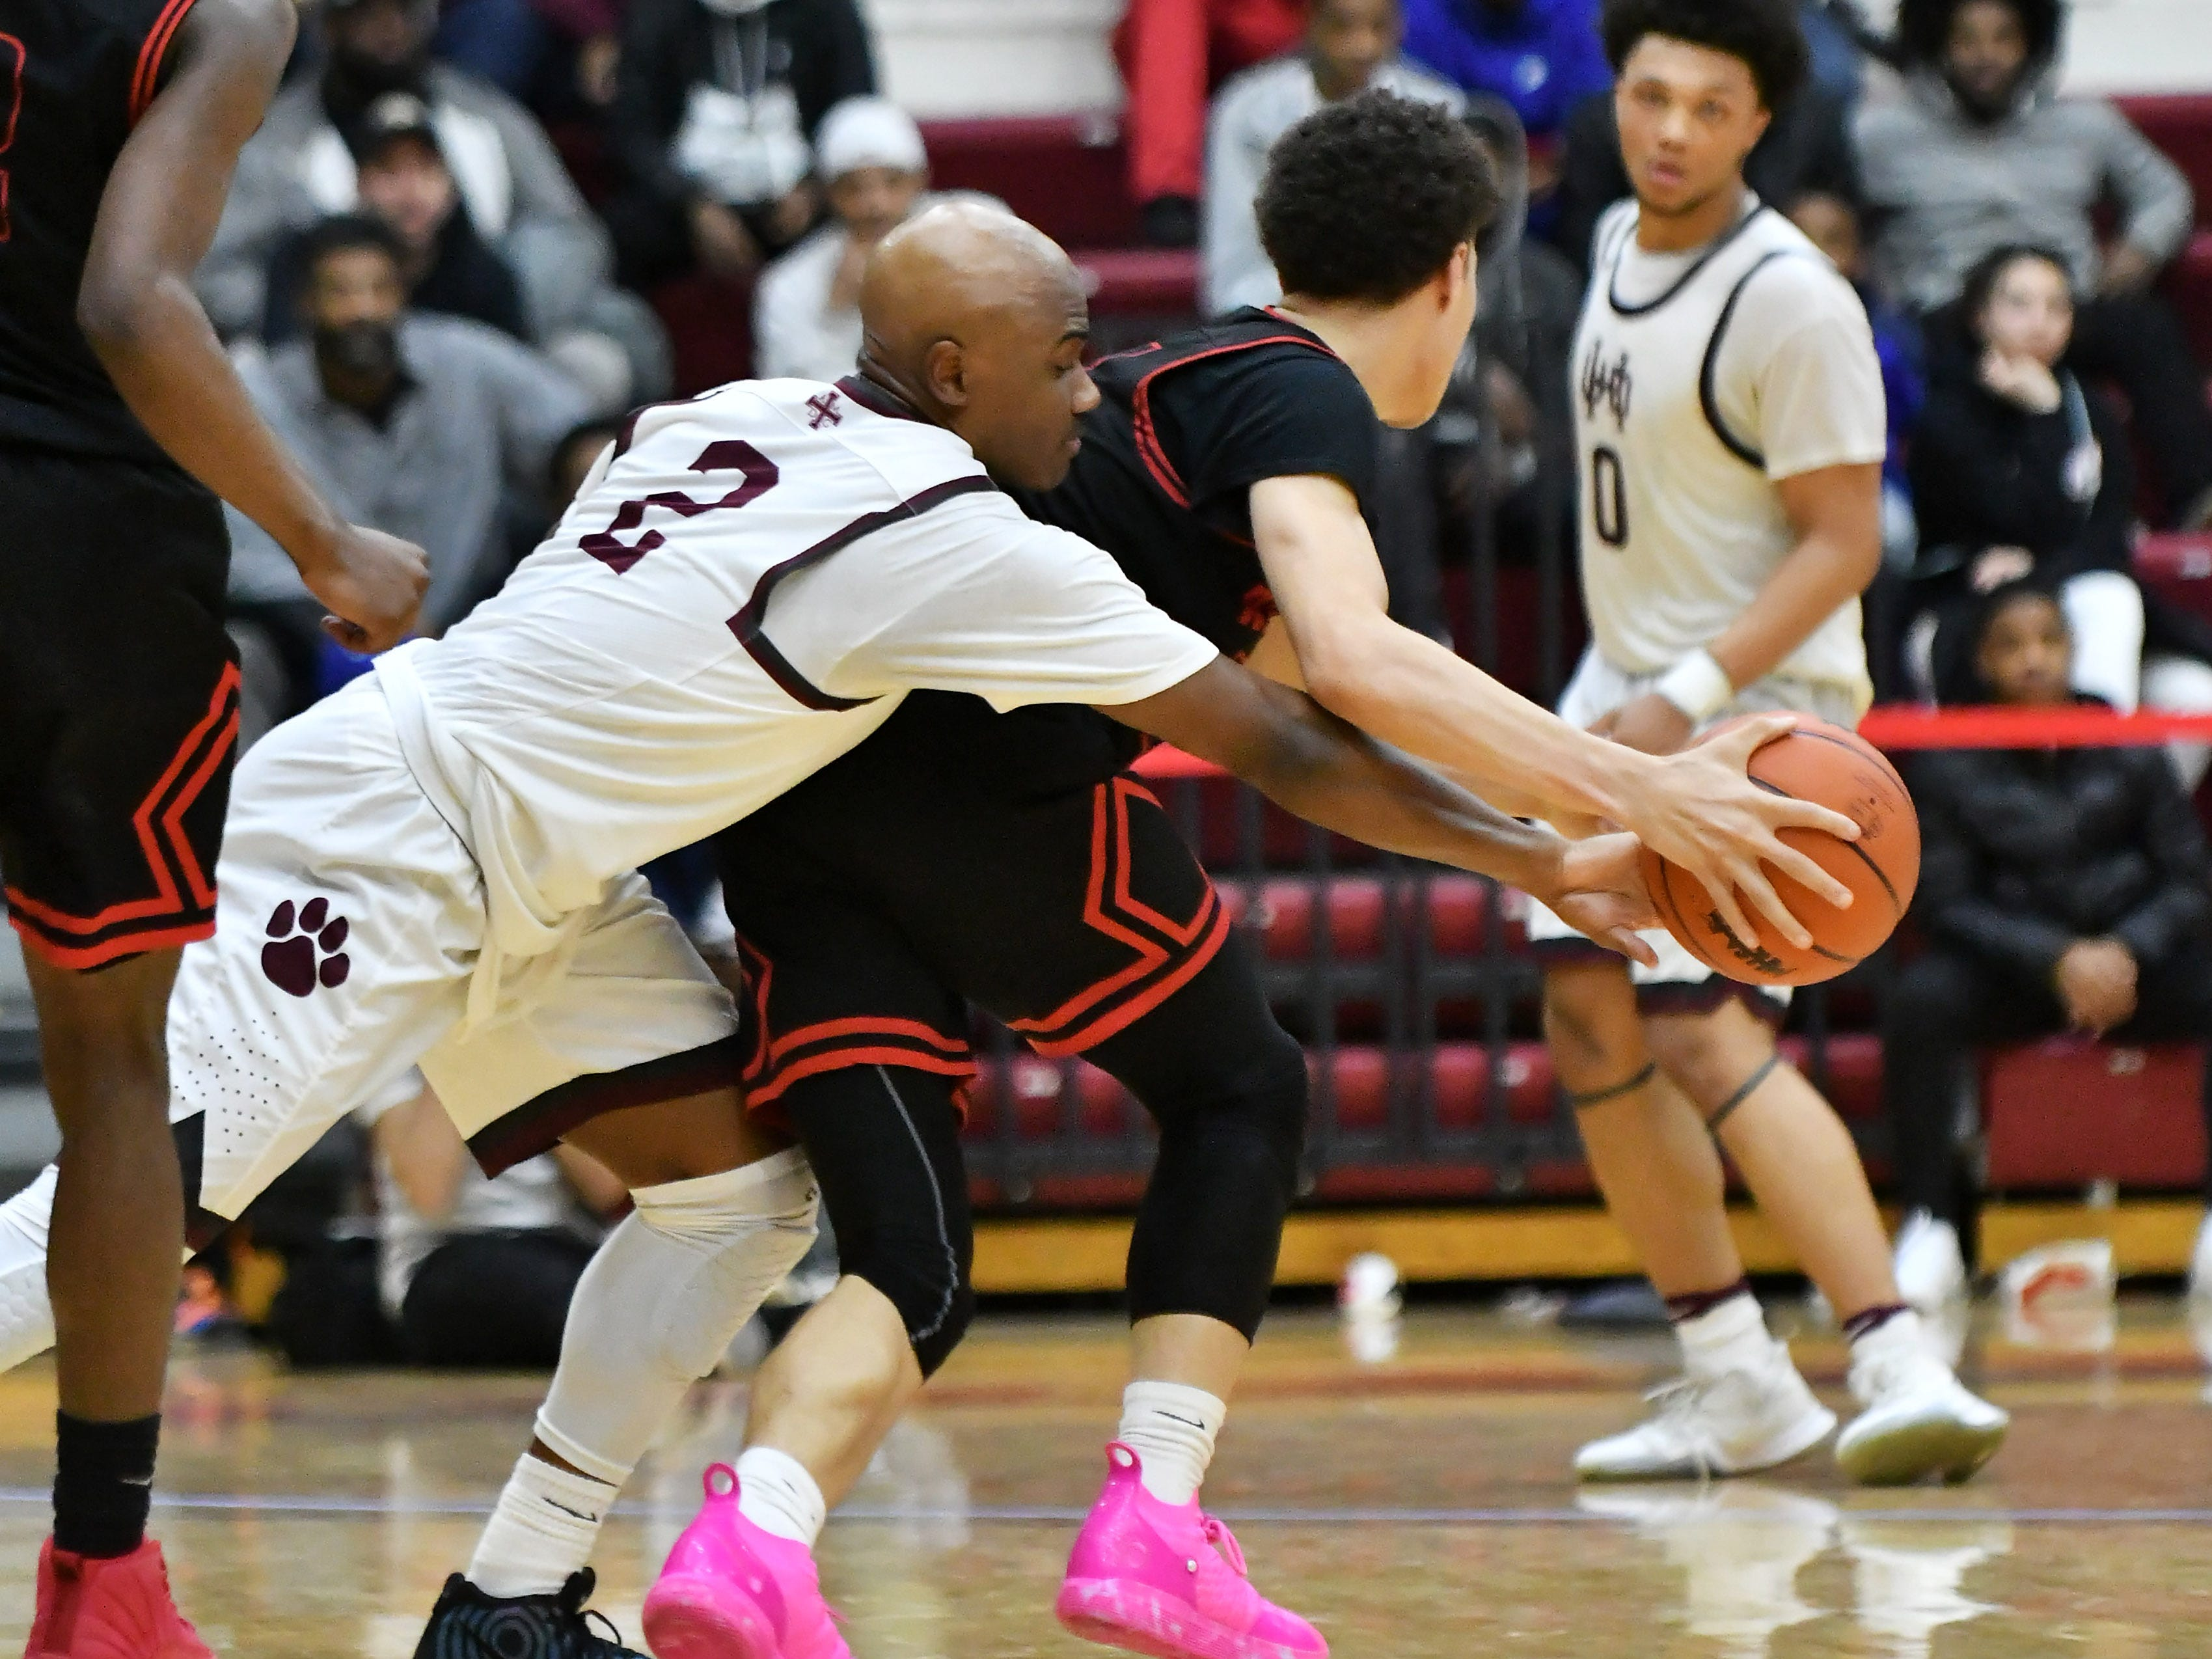 U-D Jesuit's Caleb Hunter (2) about to steal the ball from Roseville's Lazelle Judge in the second half.